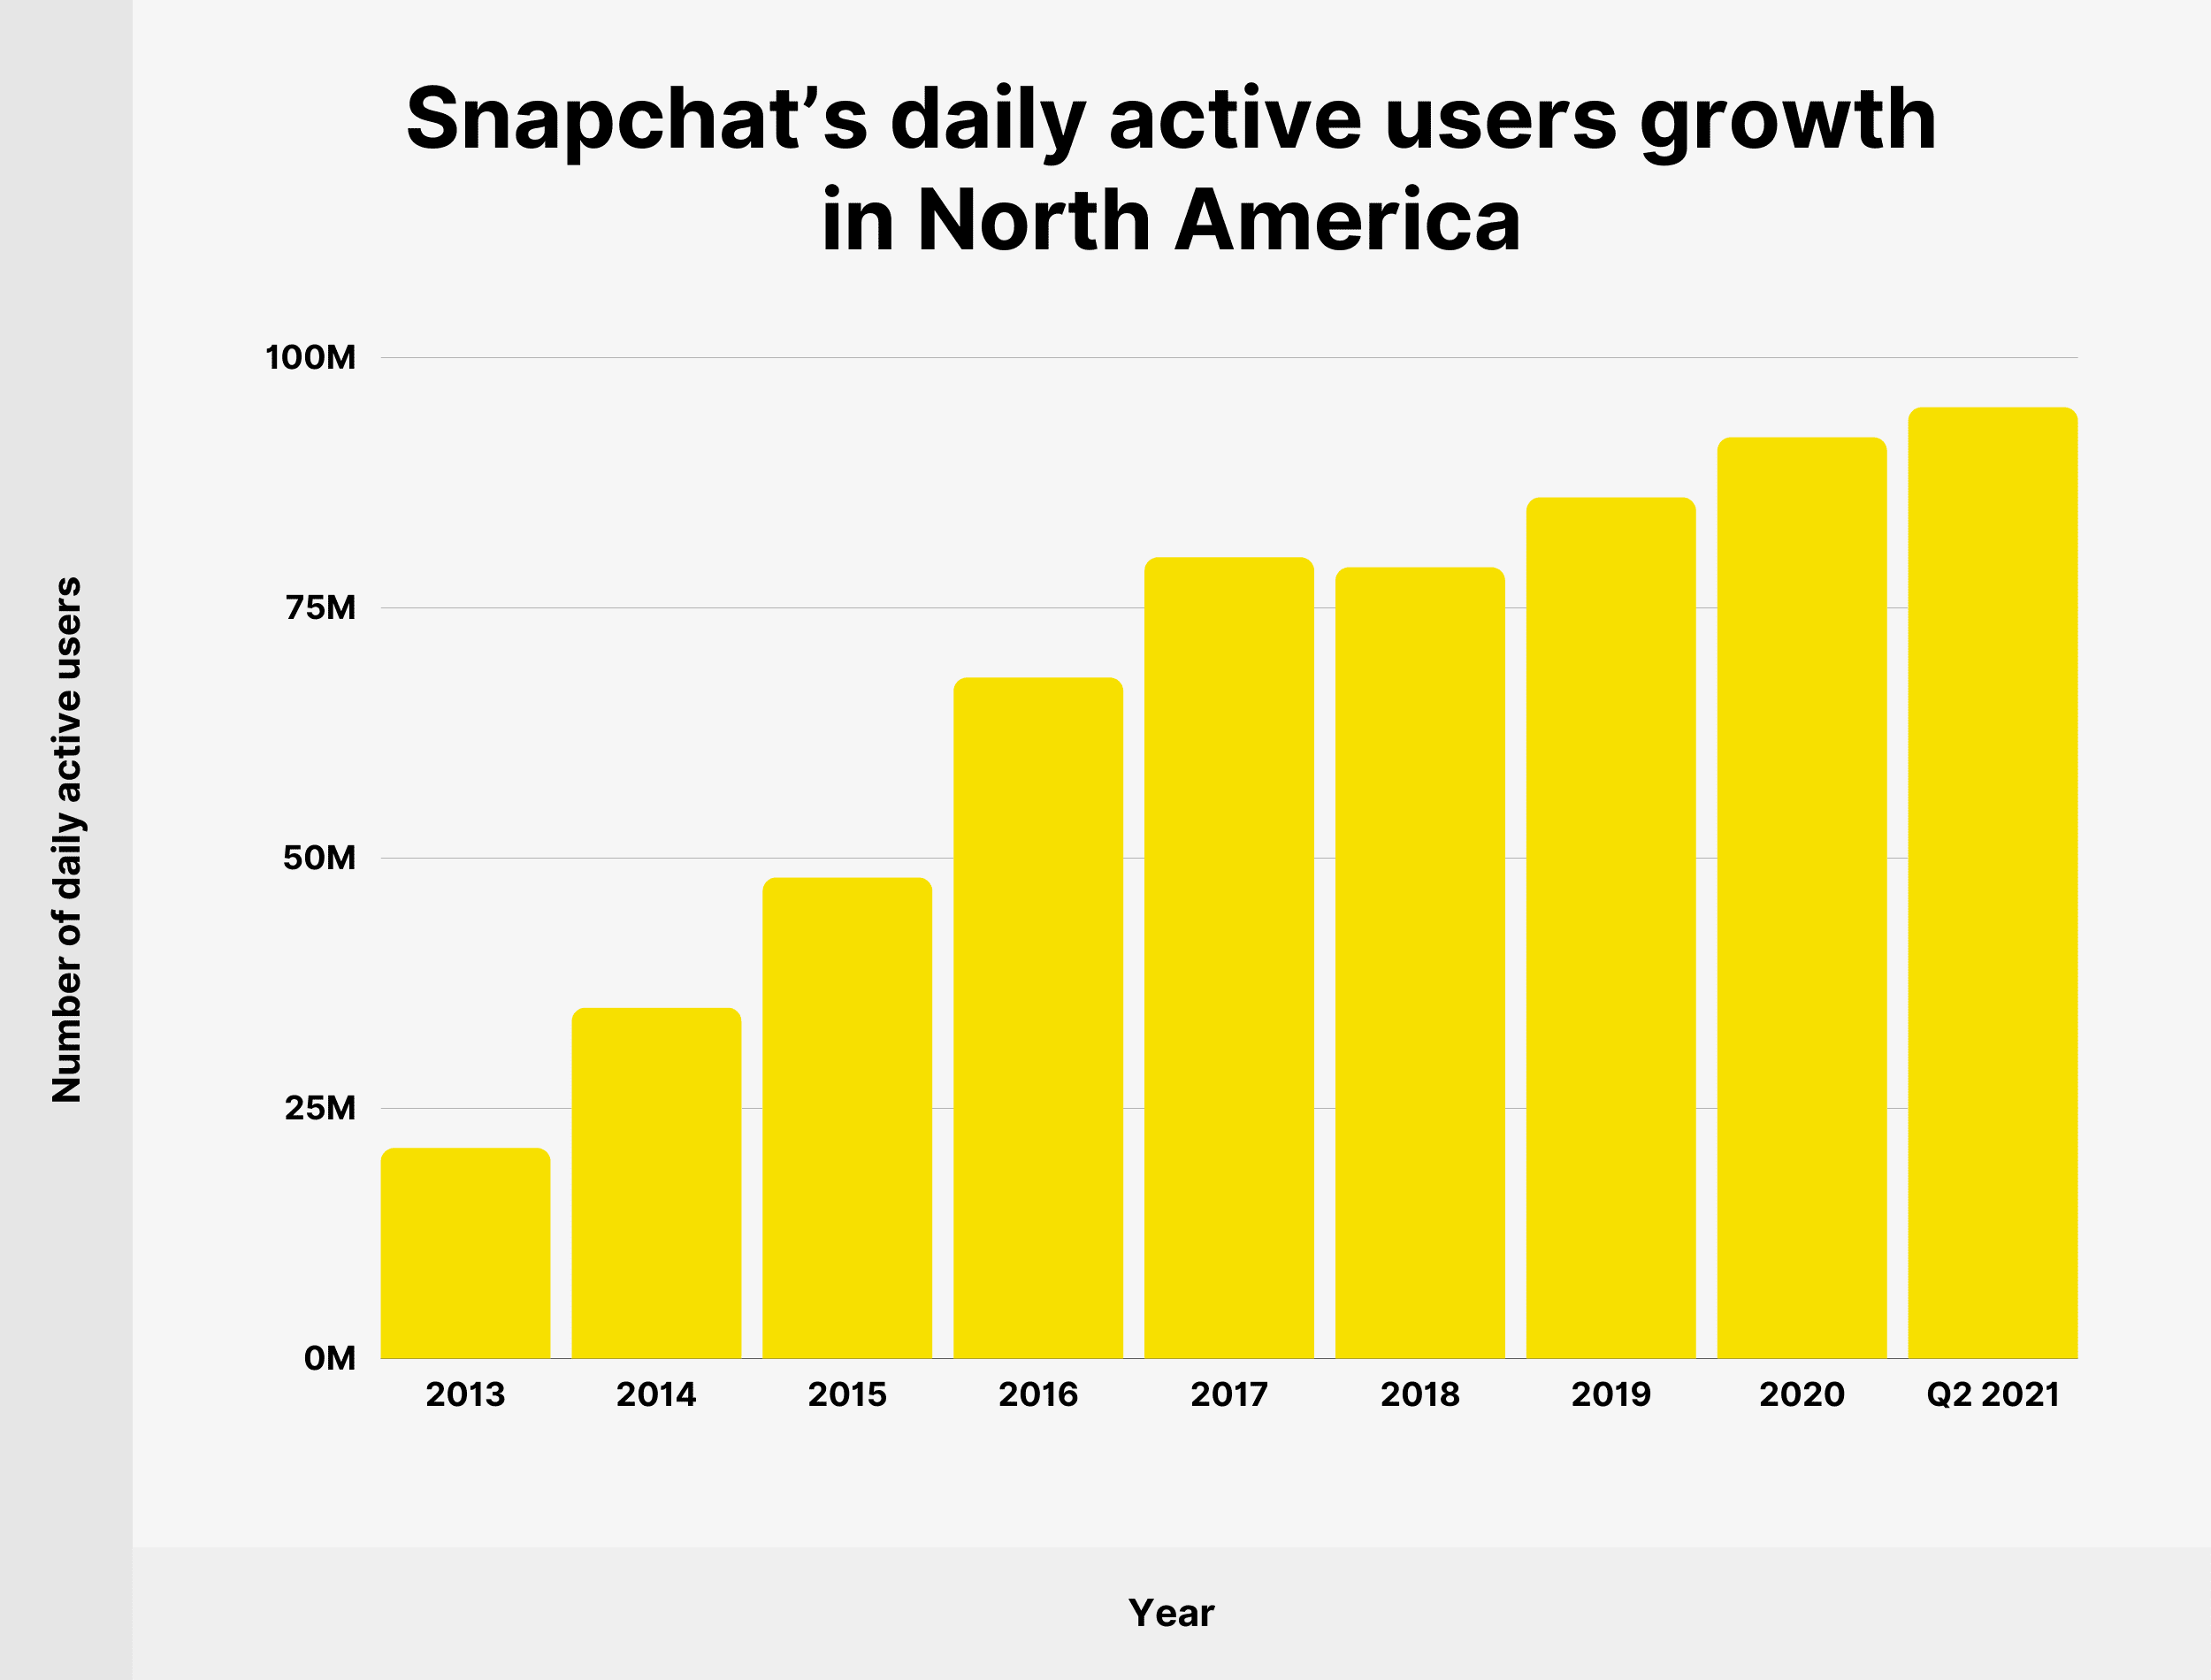 Snapchat's daily active users growth in North America